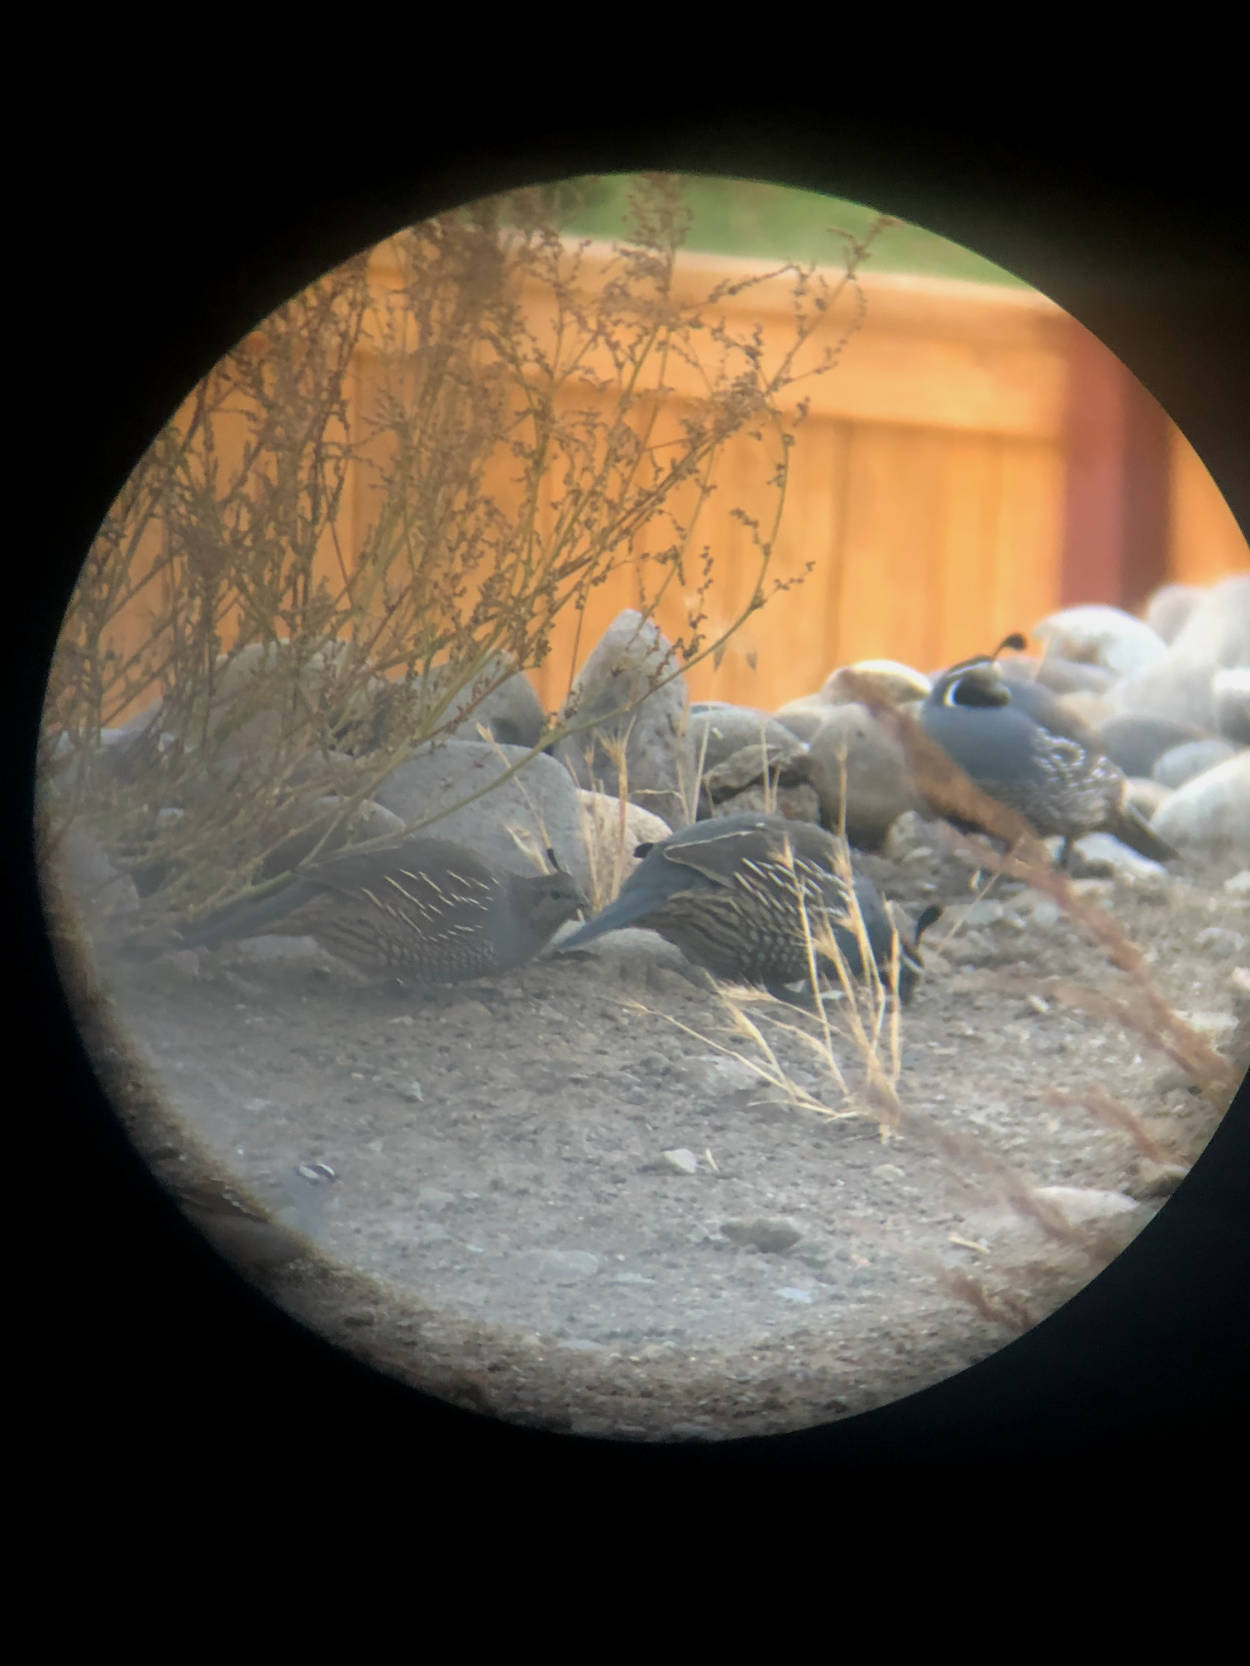 California Quail through binoculars